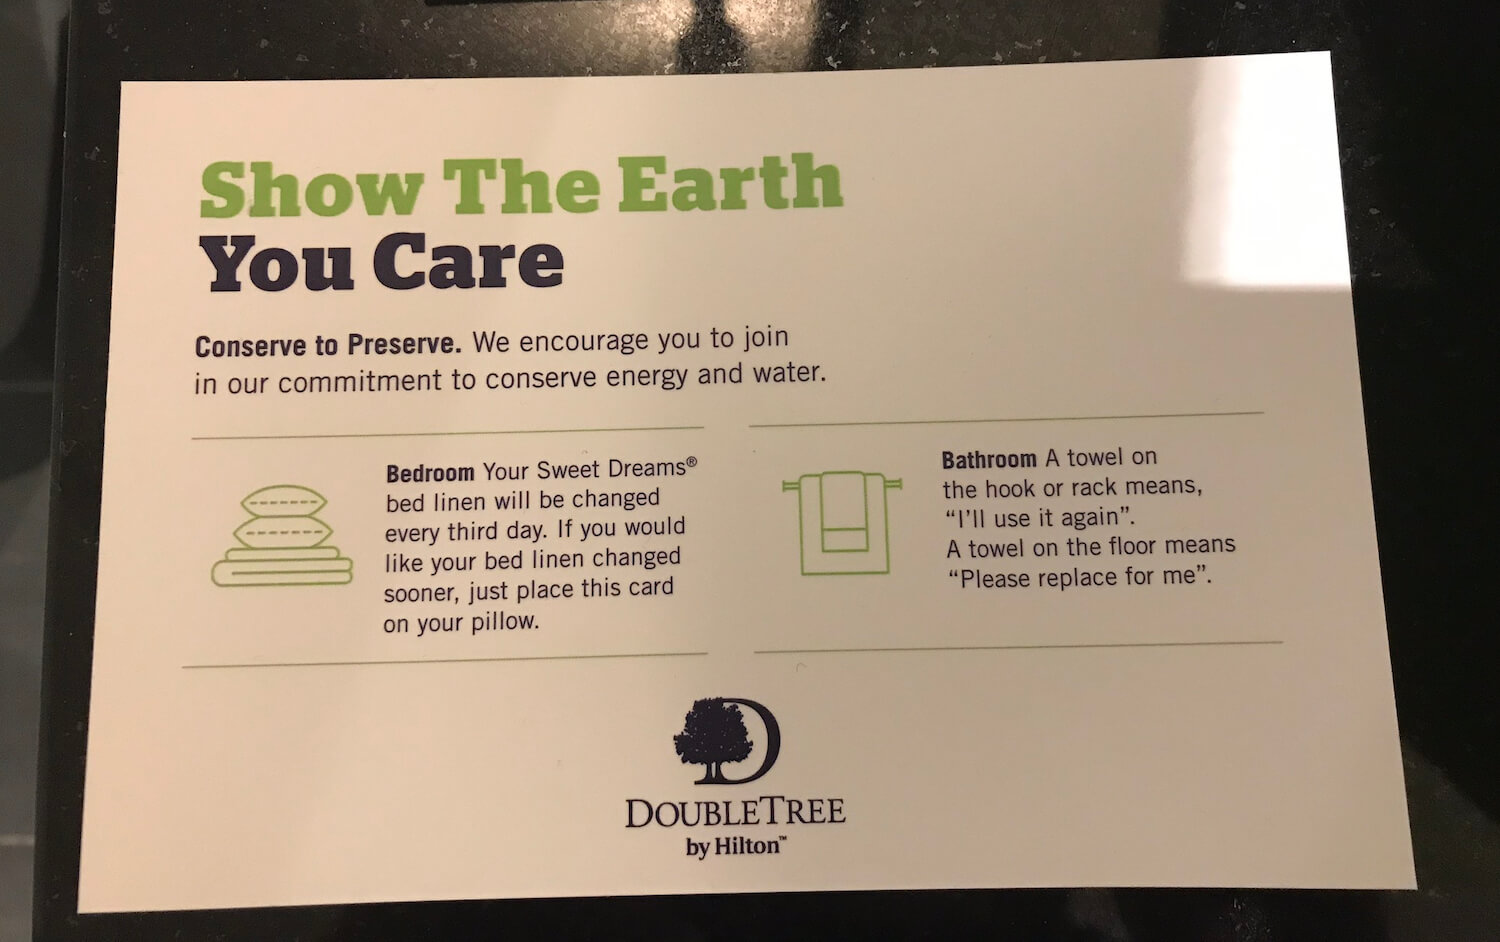 DoubleTree Dundee Conserve To Preserve Policy Card